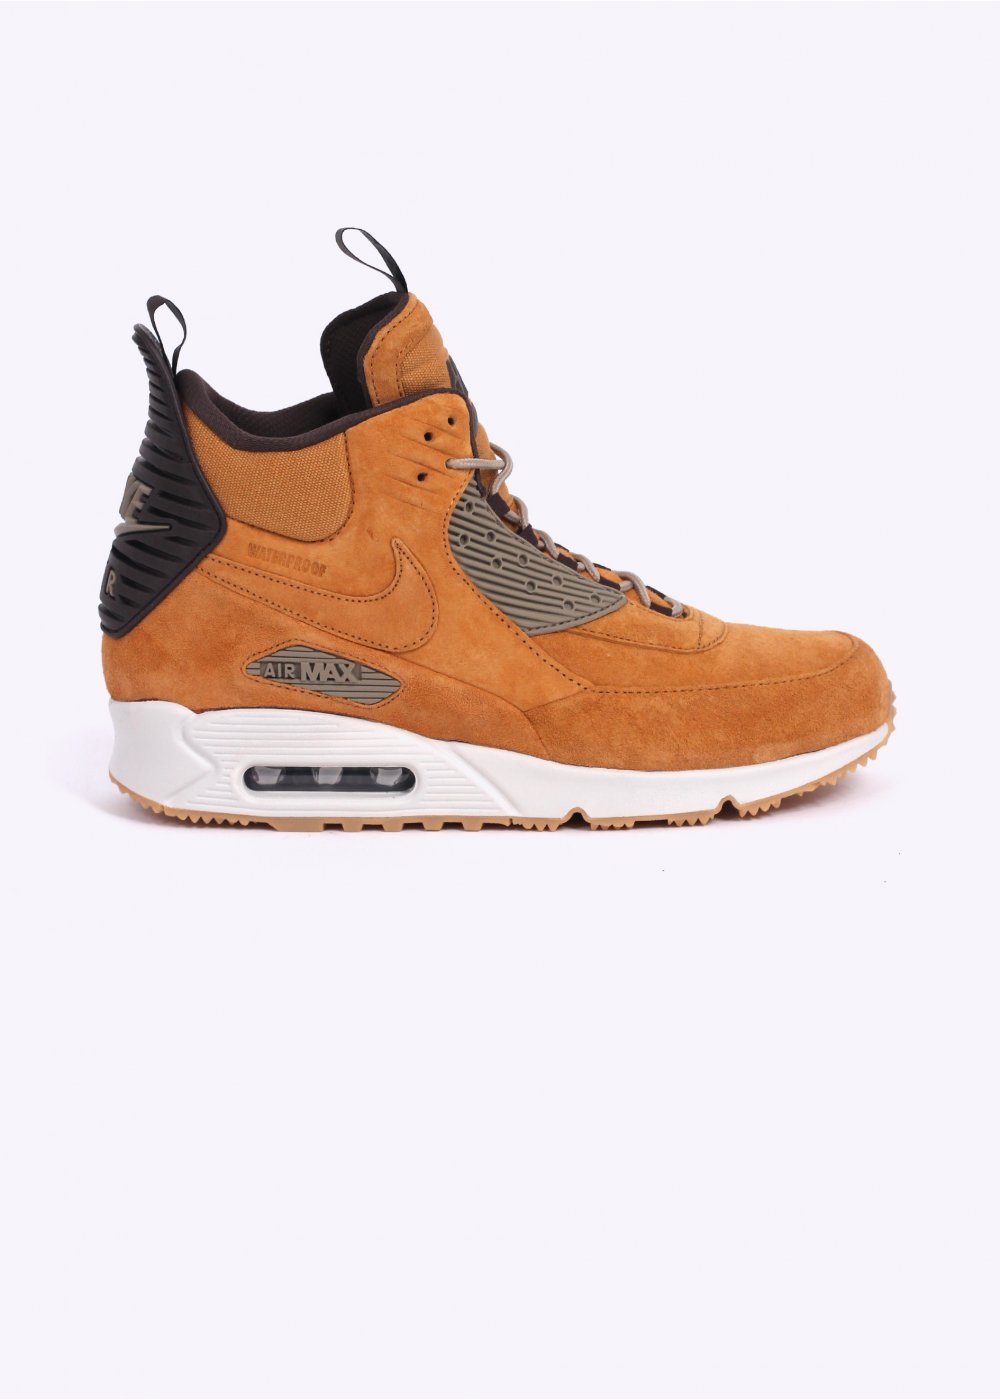 Nike Footwear Air Max 90 Winter Sneakerboots Bronze Bamboo